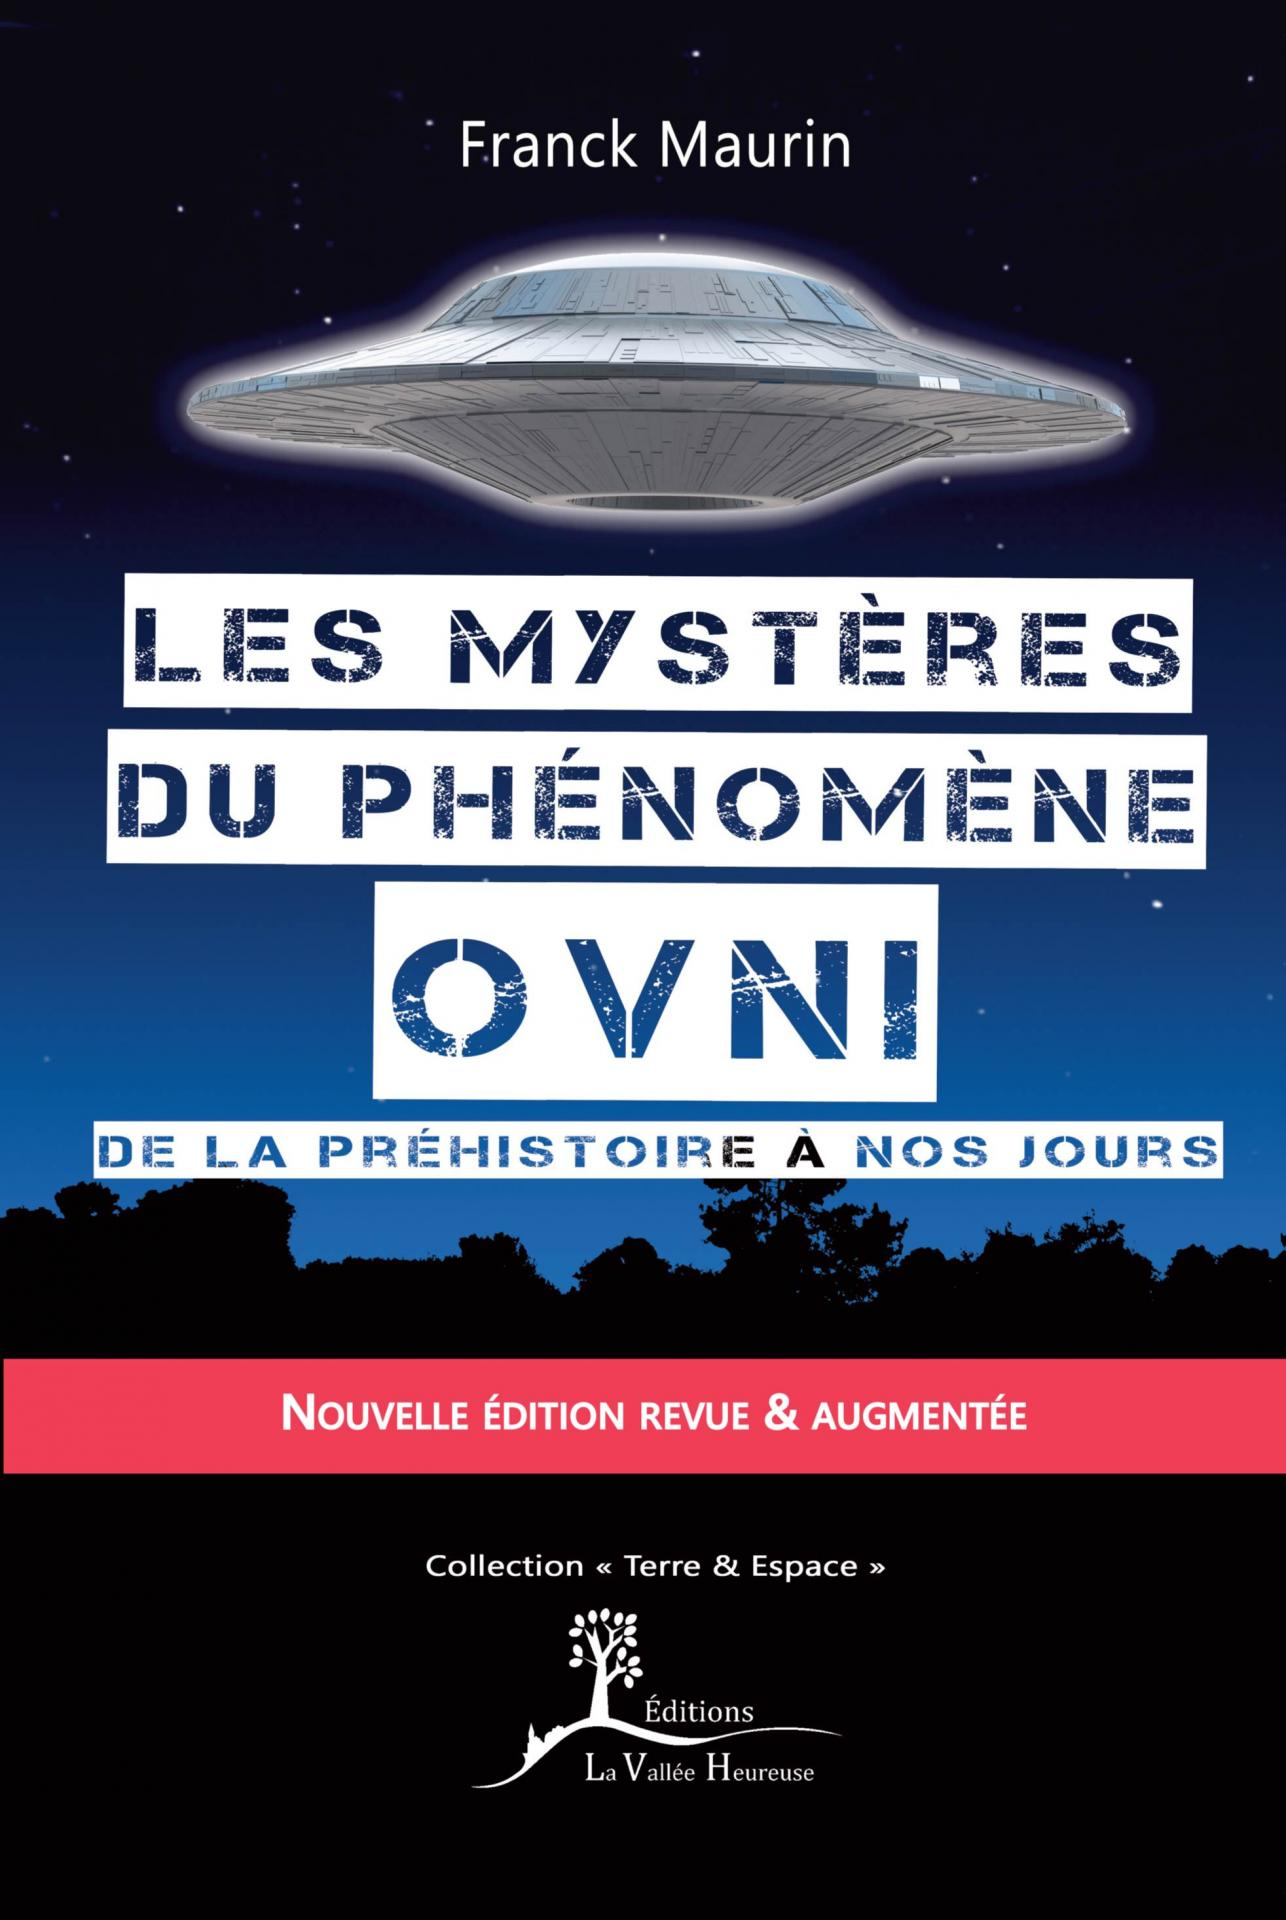 Premiere de couverture les mysteres du phenomene ovni seconde edition